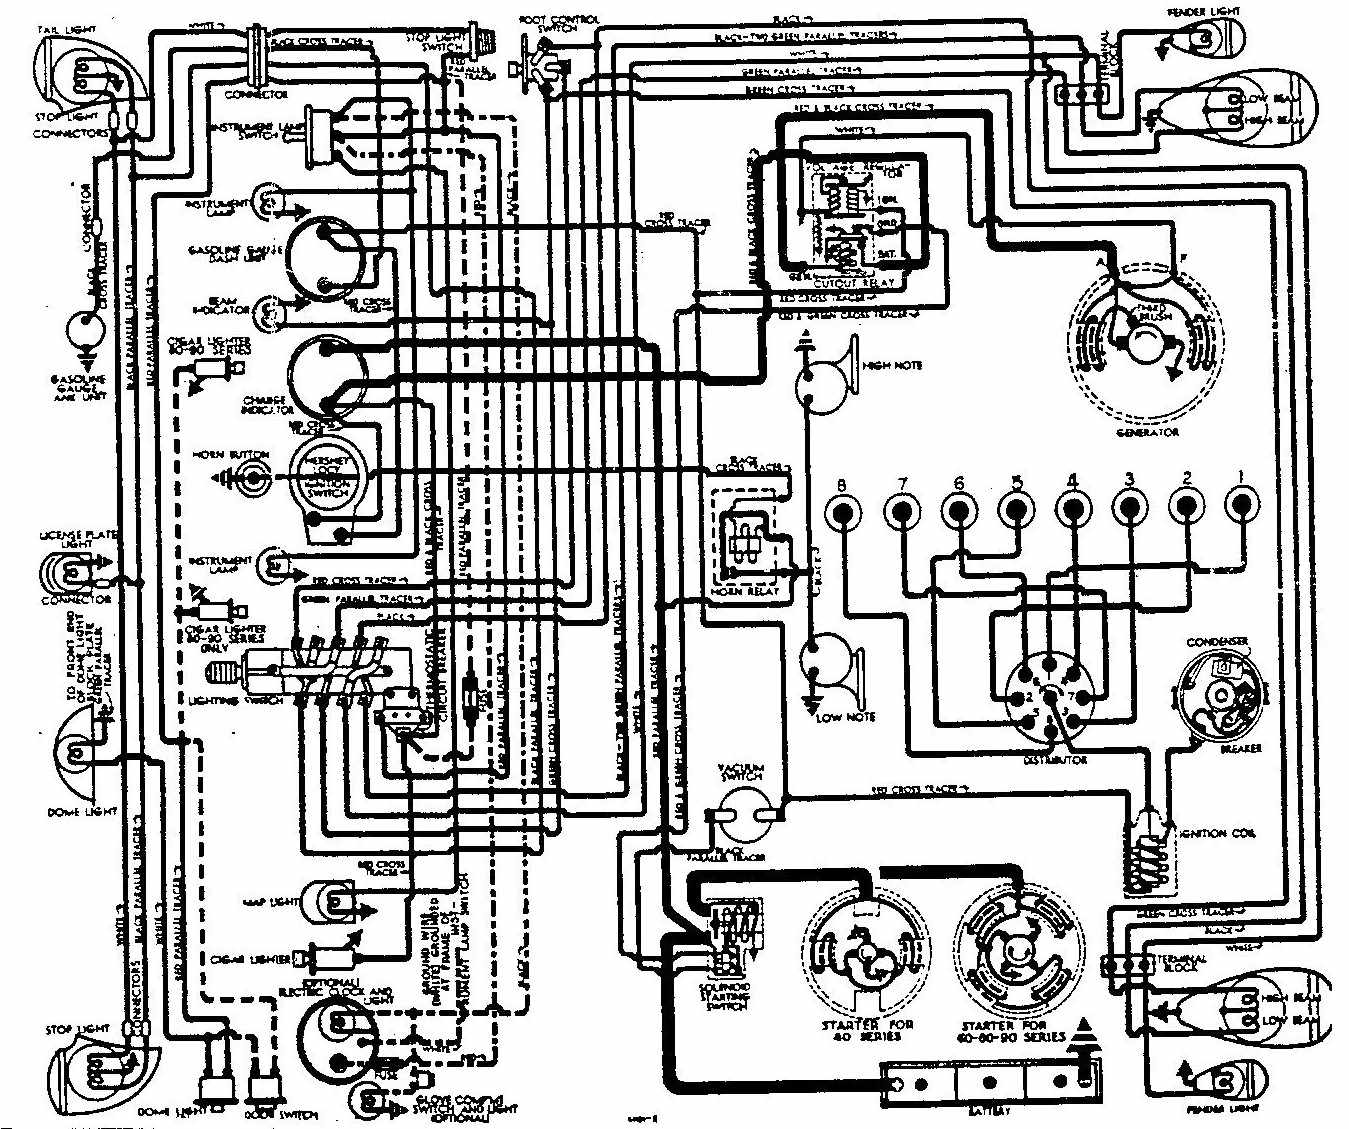 1954 Chrysler Wiring Diagram Schematic Diagrams 2003 Crysler Town And Country 2012 200